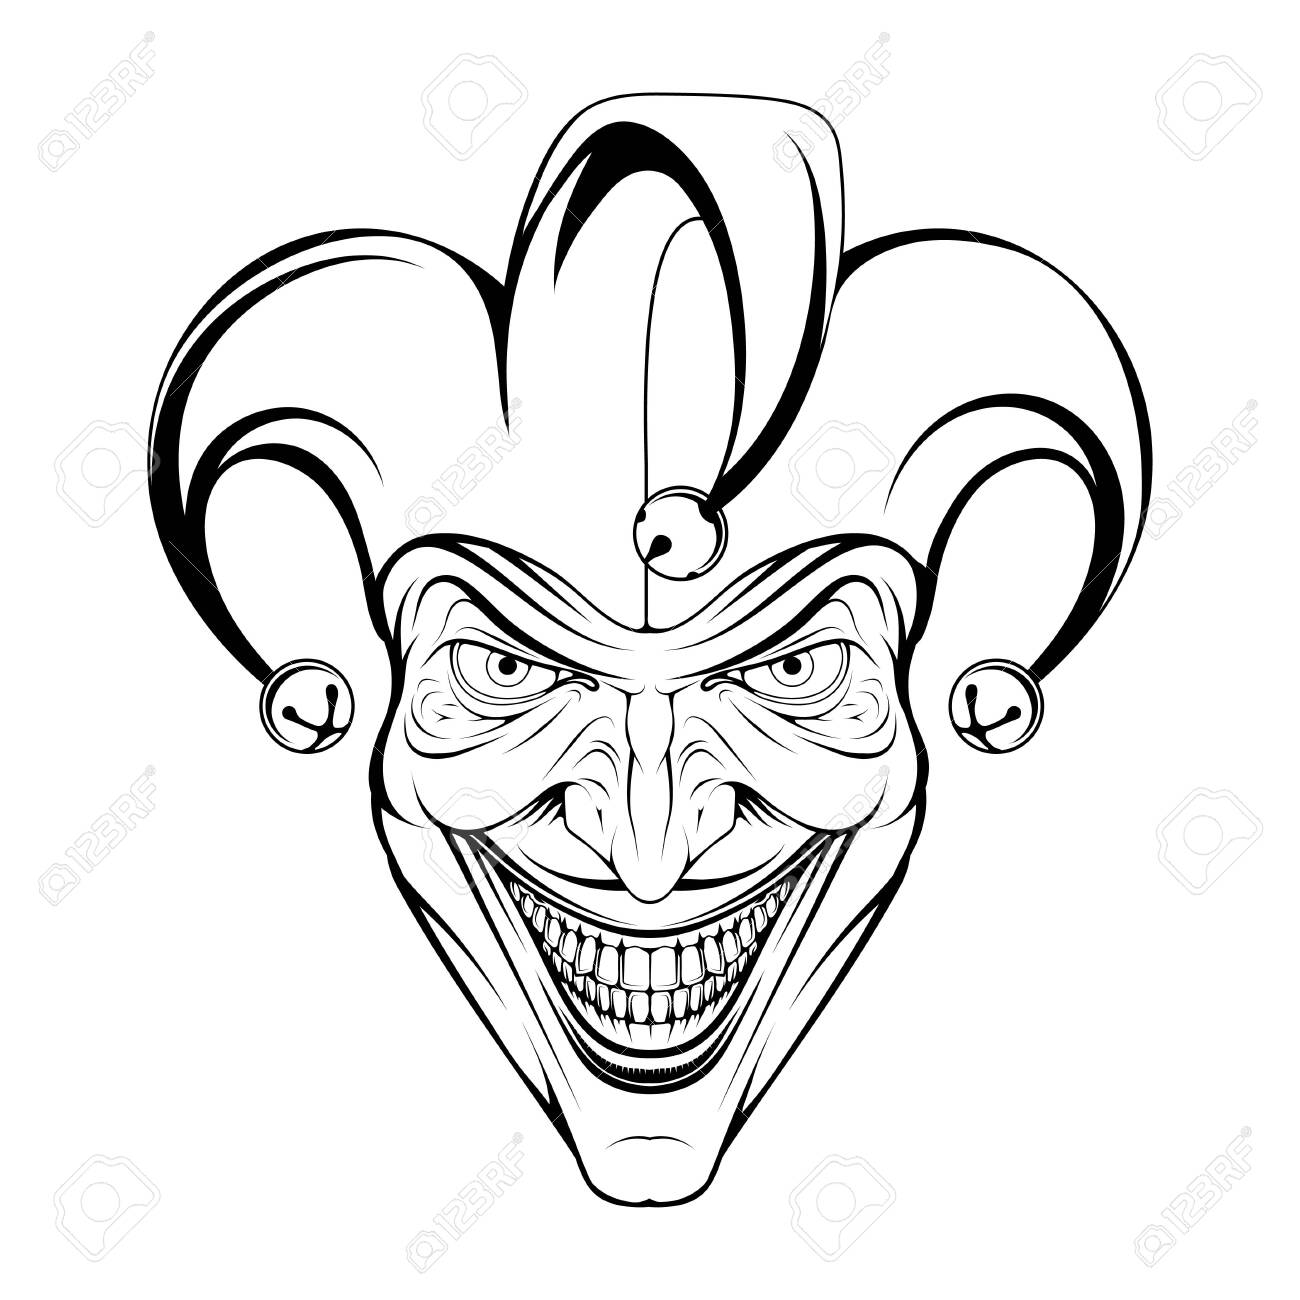 Joker Smile Posters Icon Mascot Joker Esport Mascot Jokester Royalty Free Cliparts Vectors And Stock Illustration Image 146748037 I loved the trailer and so decided to make a lyric video of the. joker smile posters icon mascot joker esport mascot jokester